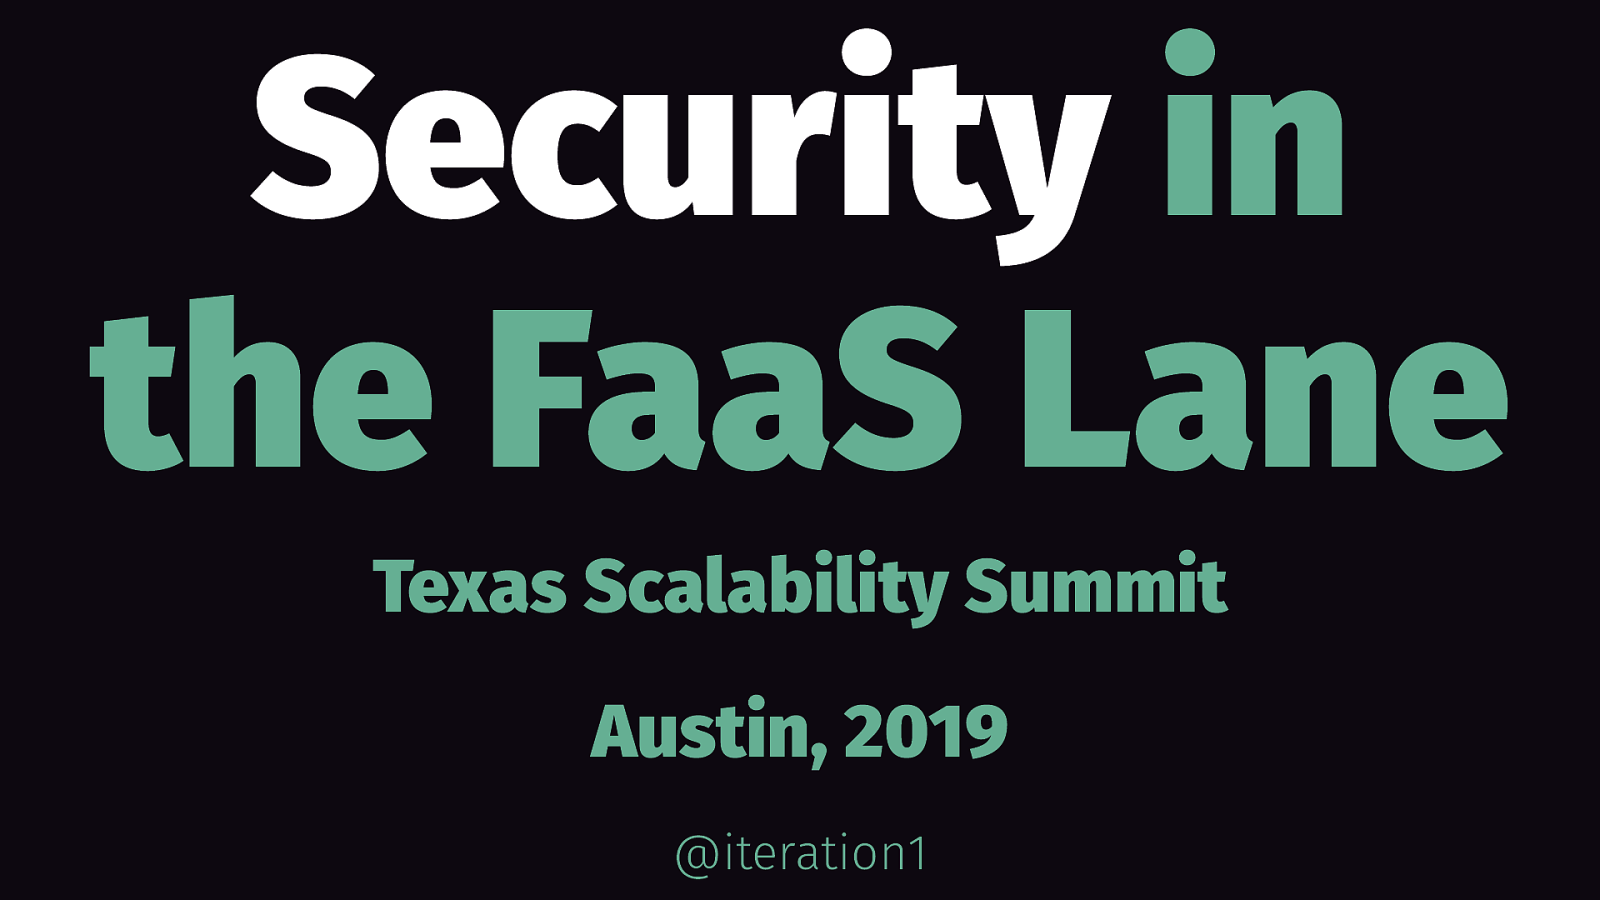 Security in the FaaS lane